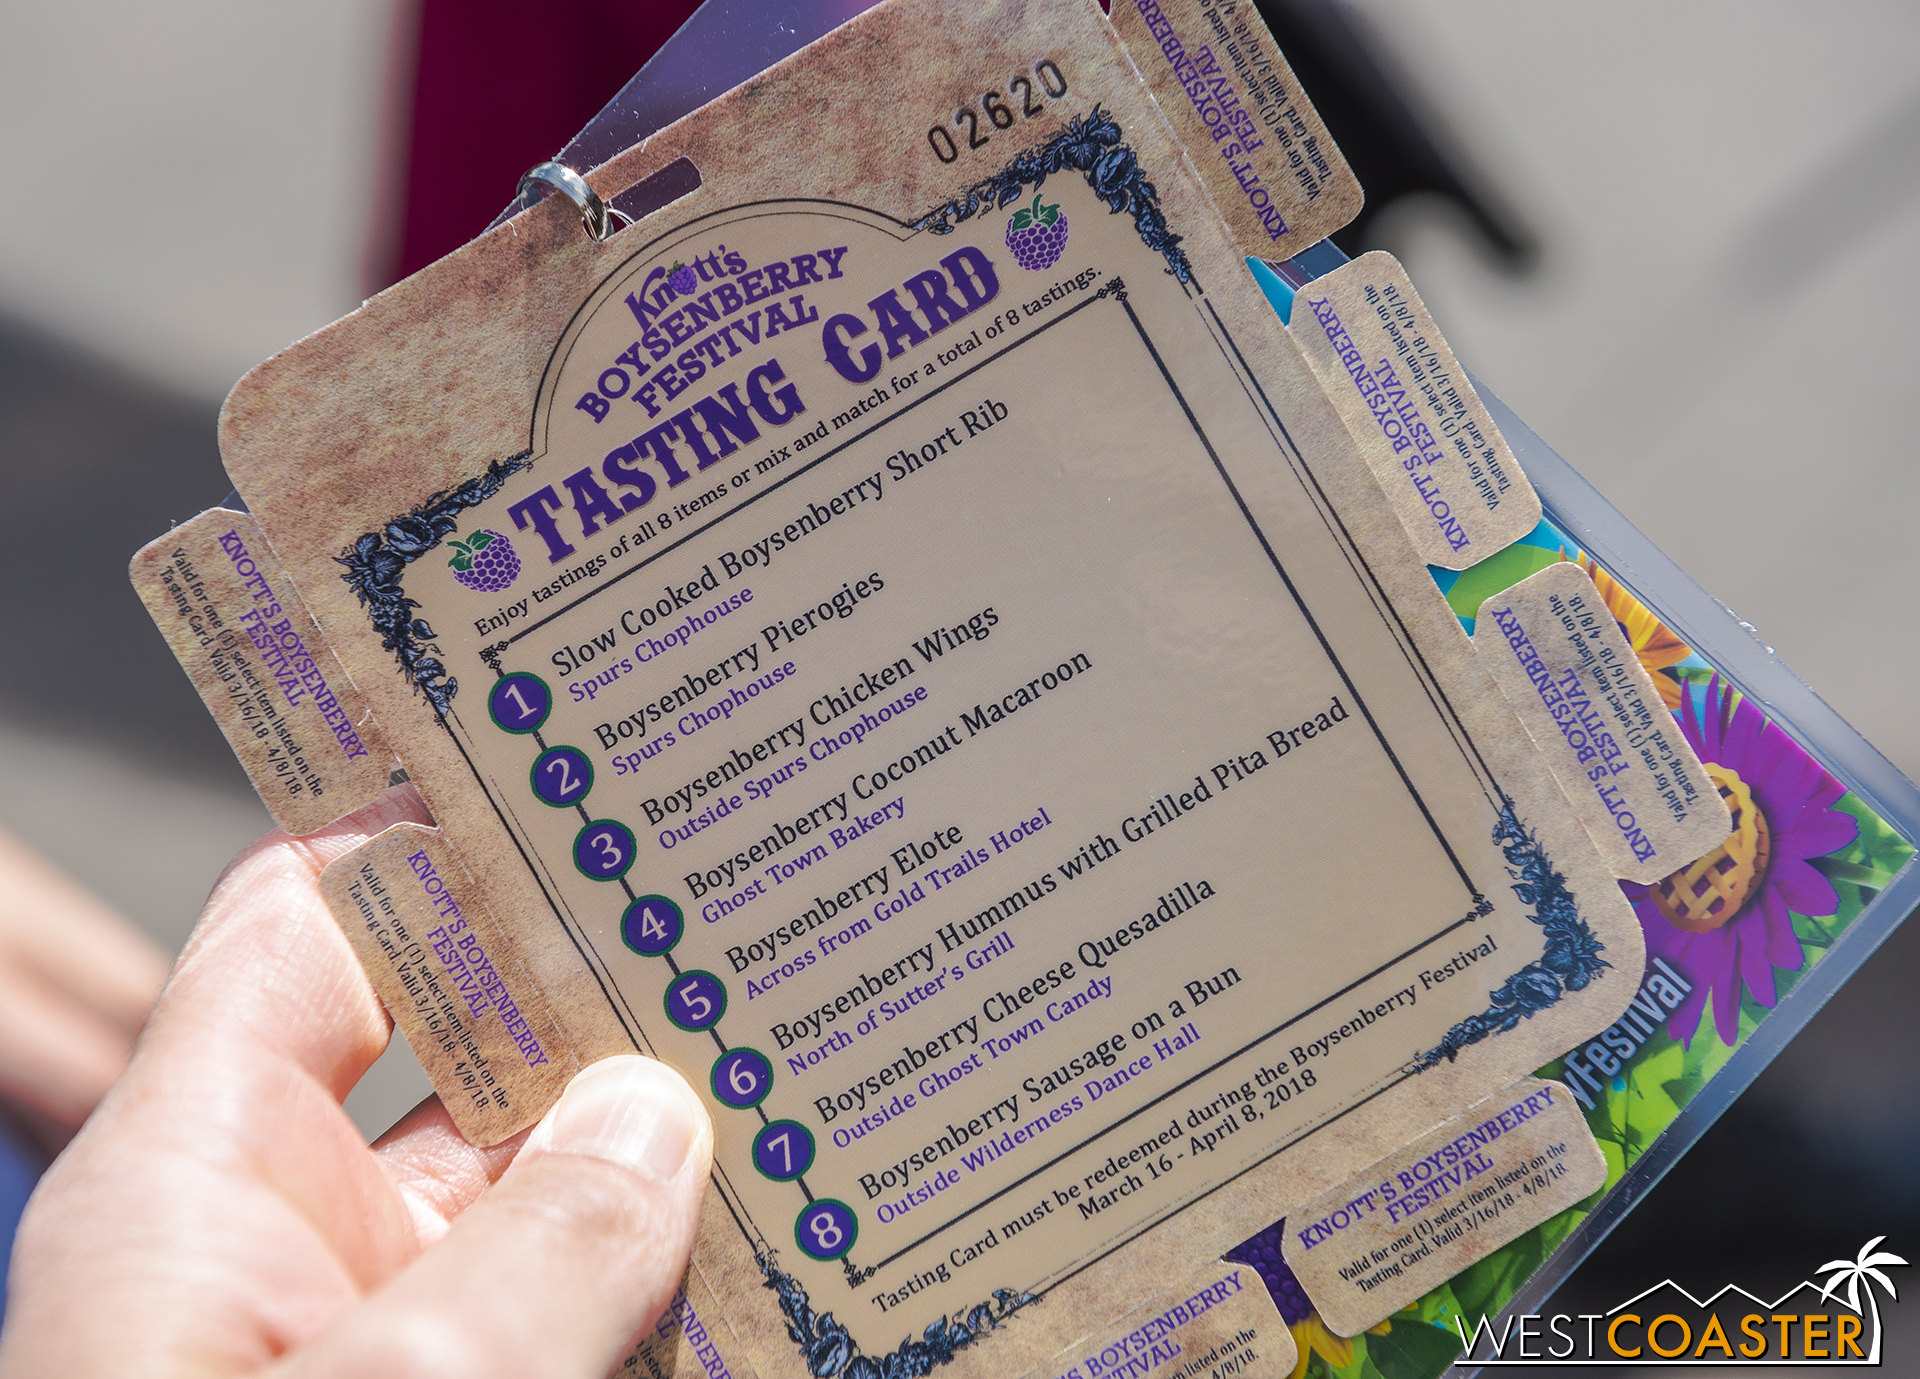 This year's Tasting Card is $30 and different from last year--but a little familiar to fans of a certain nearby park's food festival.